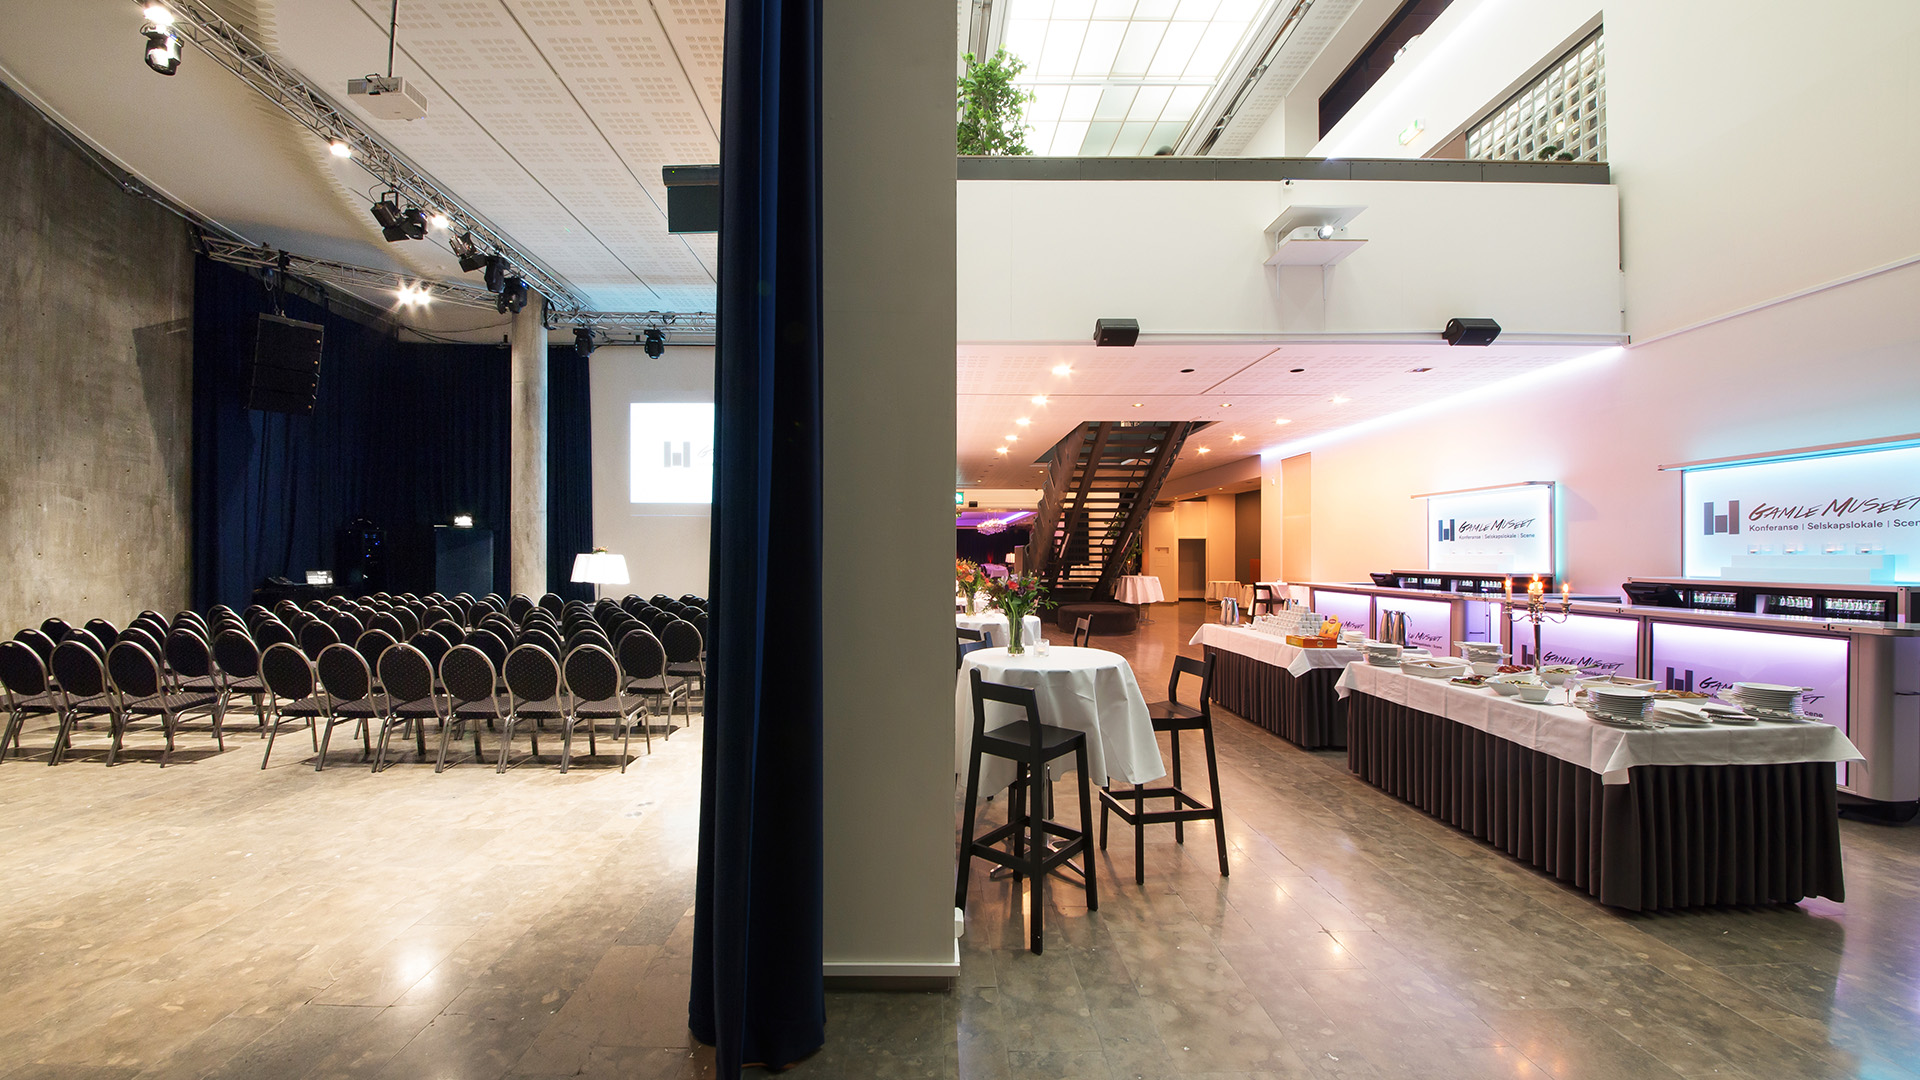 Large rooms for conferences and lots of space for serving lunch in a different part of the venue.